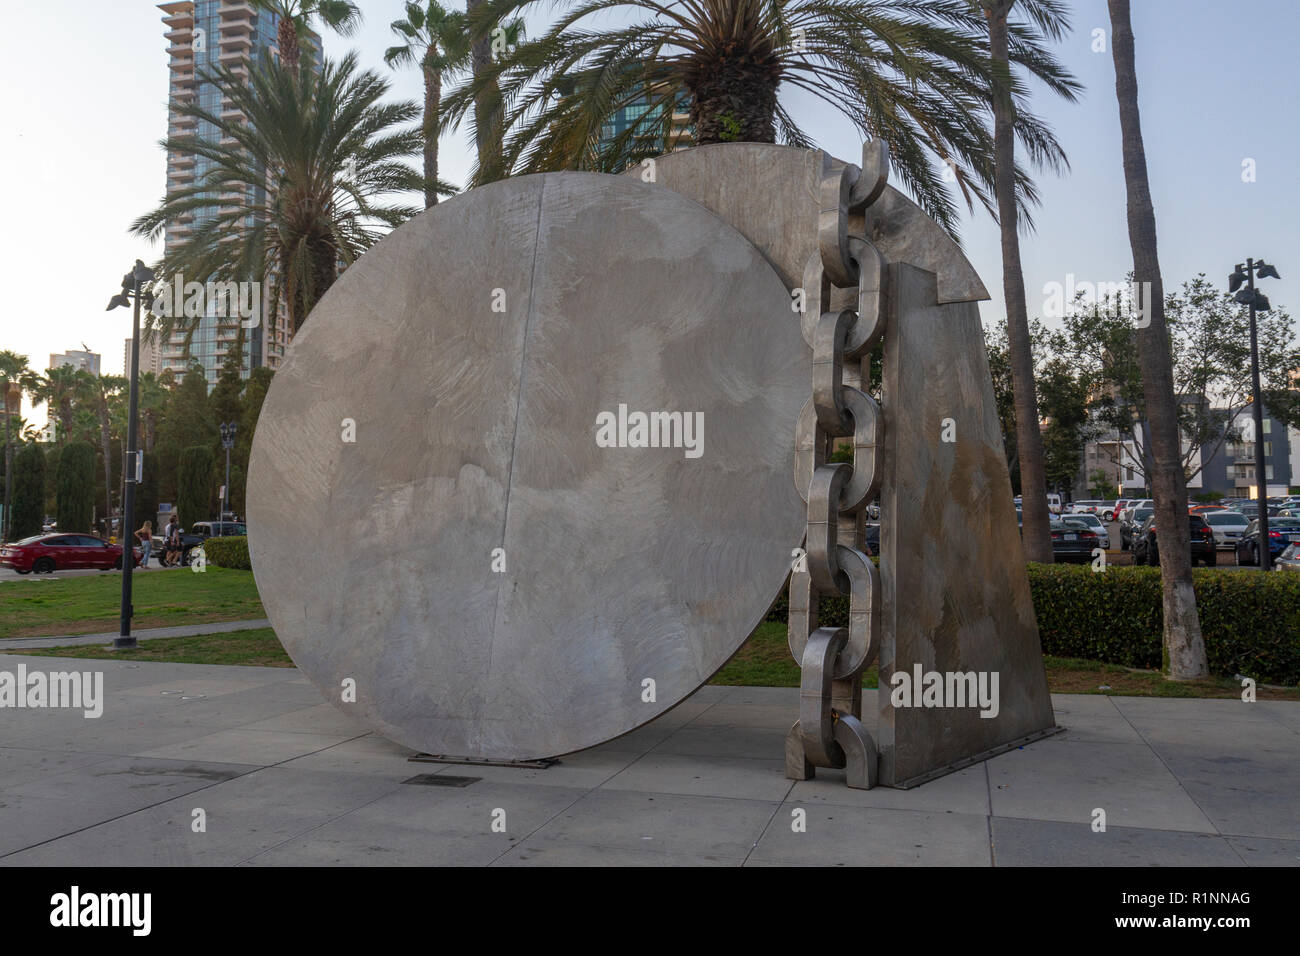 'Breaking of the Chains' sculpture by Melvin Edwards,  Martin Luther King Jr. Promenade, downtown San Diego, California, United States. - Stock Image